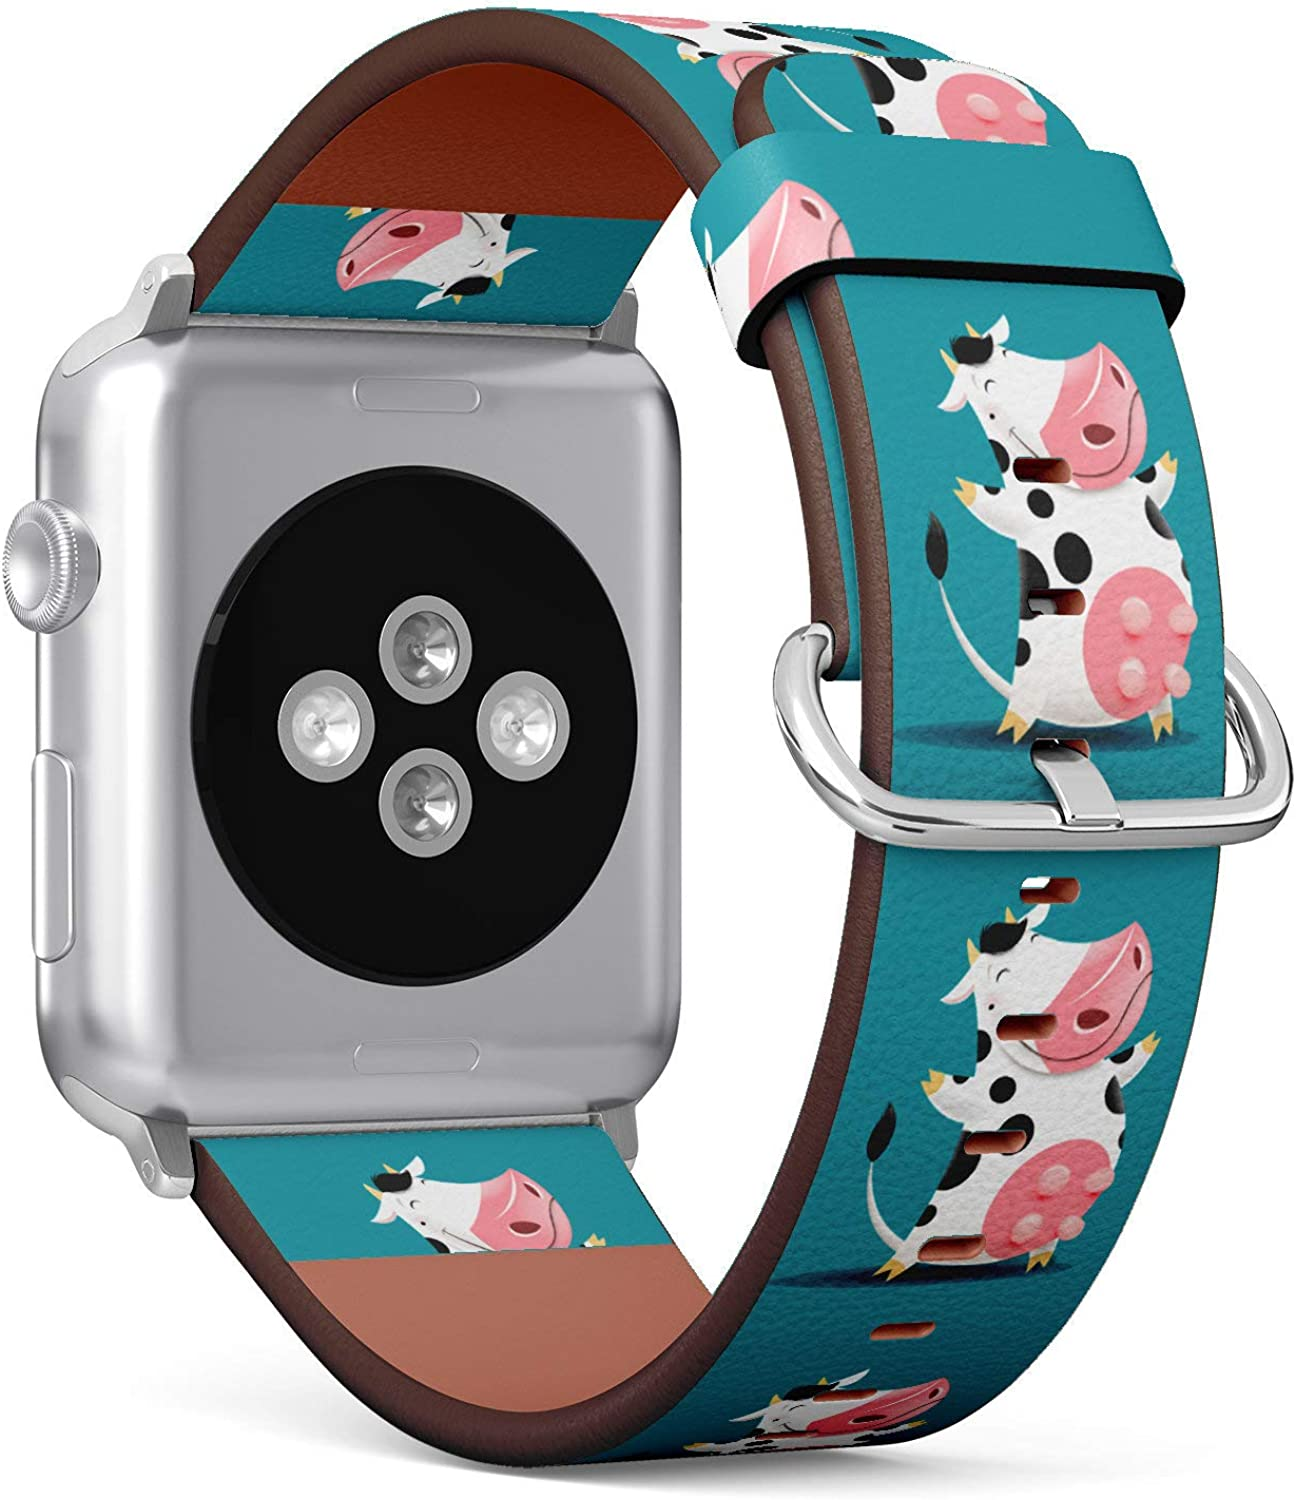 (Cute Milk Cow) Patterned Leather Wristband Strap for Apple Watch Series 4/3/2/1 gen,Replacement for iWatch 42mm / 44mm Bands